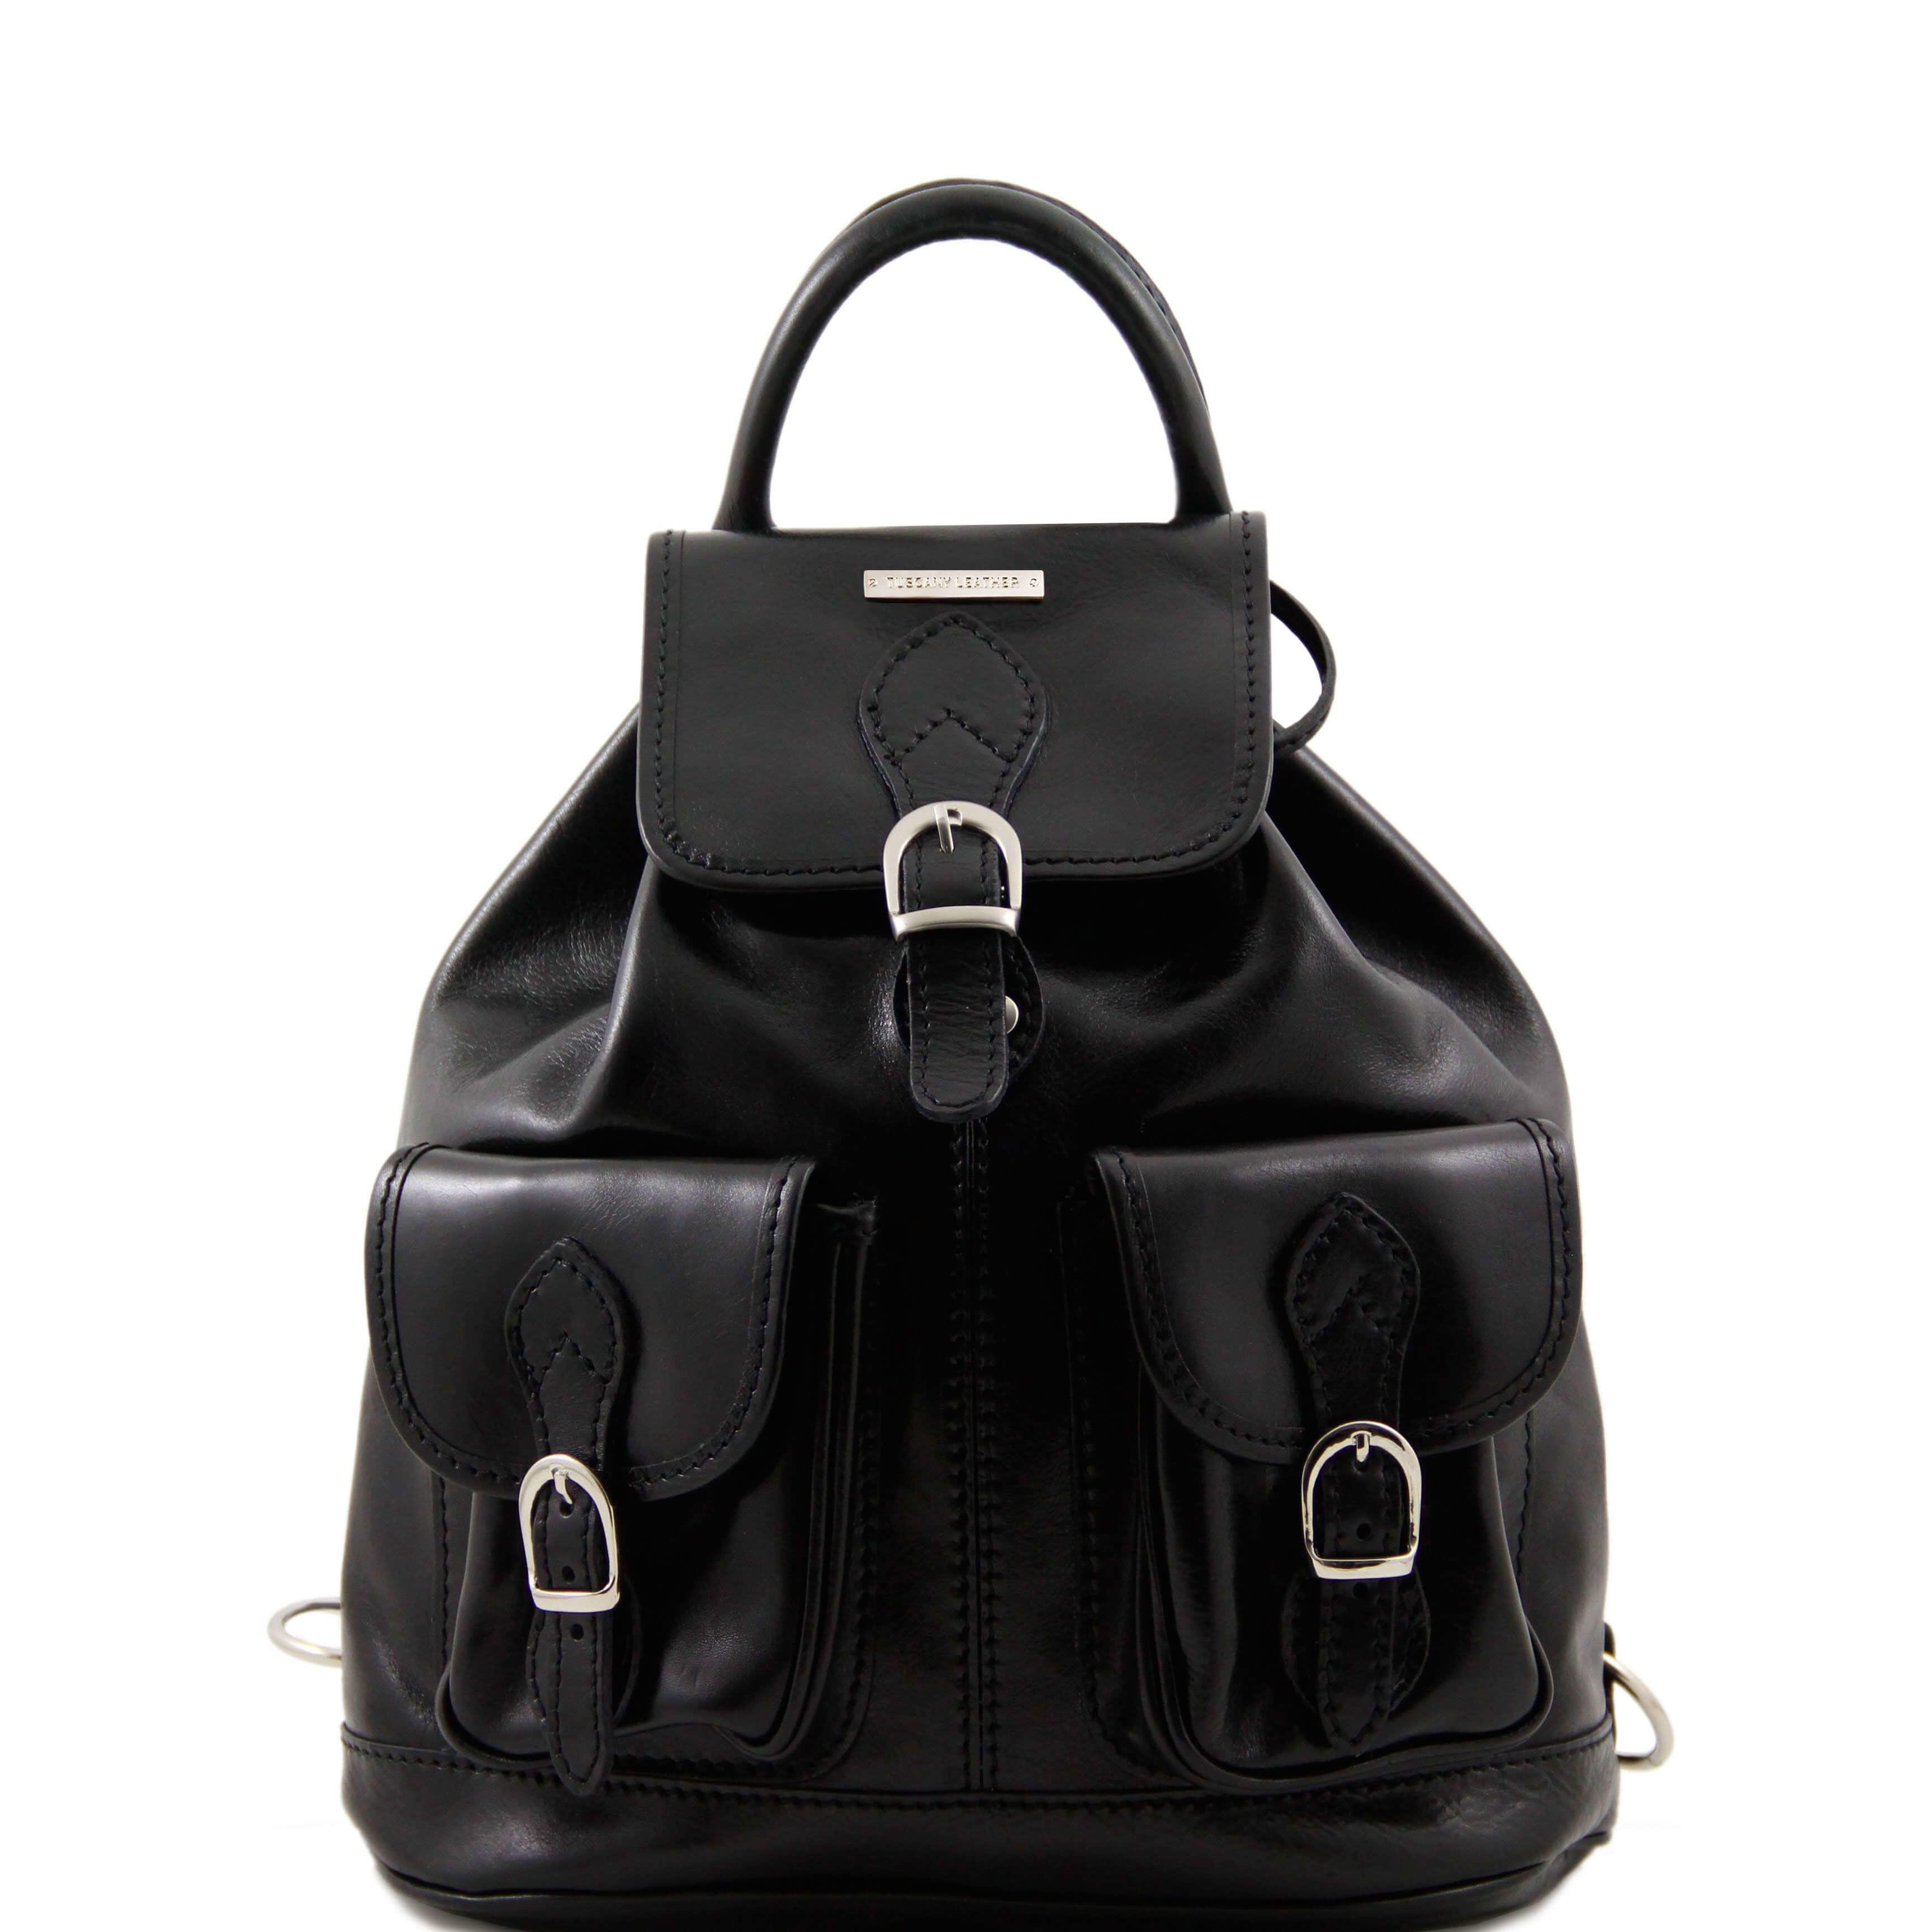 TL9035 Tokyo Leather Leisure - Buisness - Backpack - Rucksack -